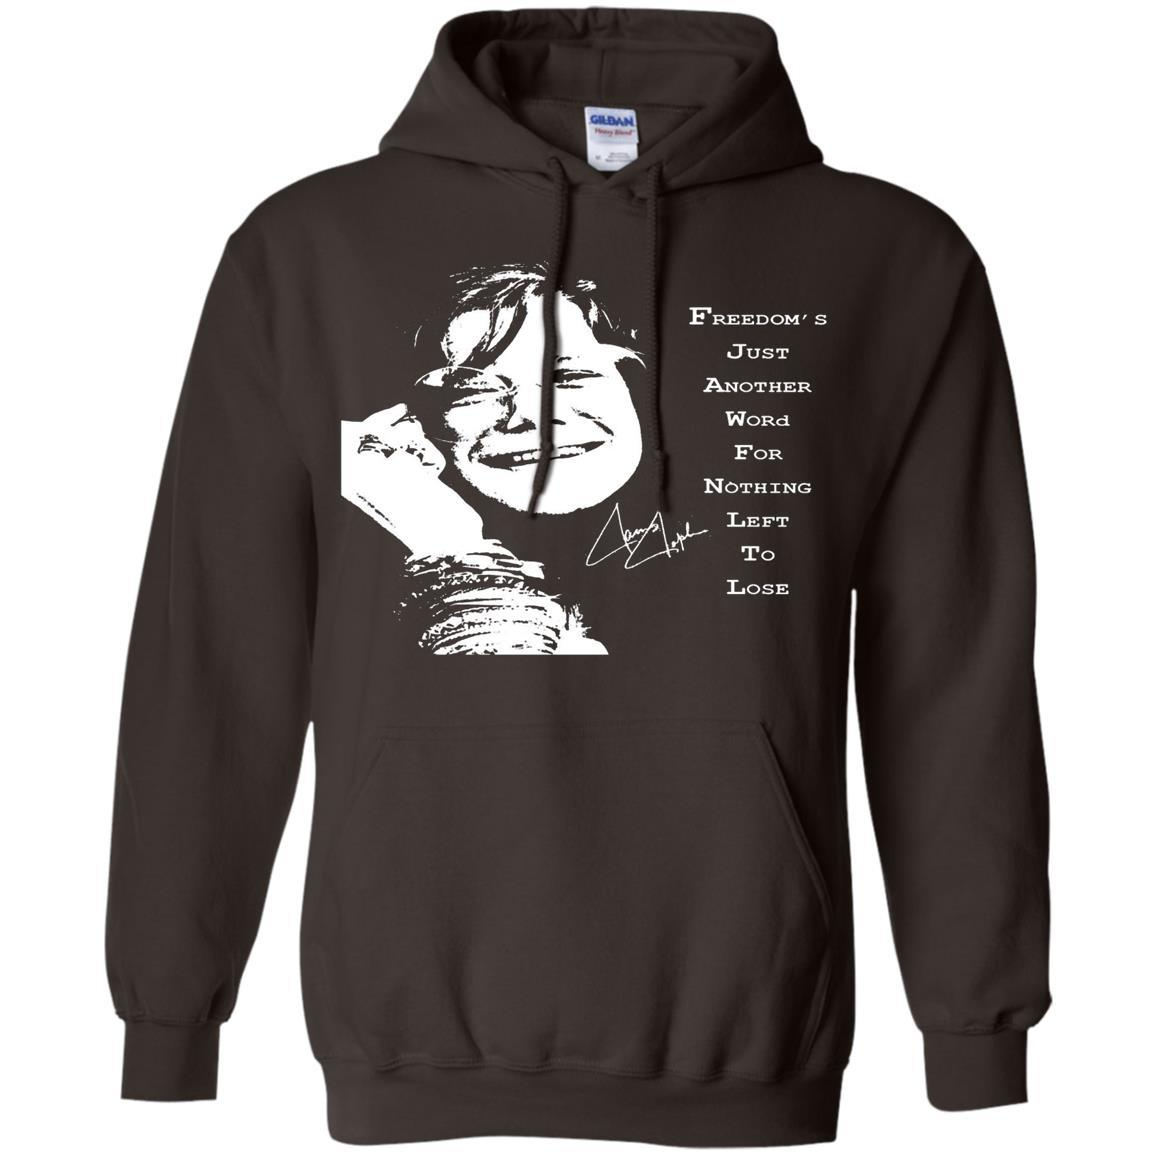 JANIS JOPLIN SHIRTS FOR FANS - Pullover Hoodie Dark Chocolate / 5XL